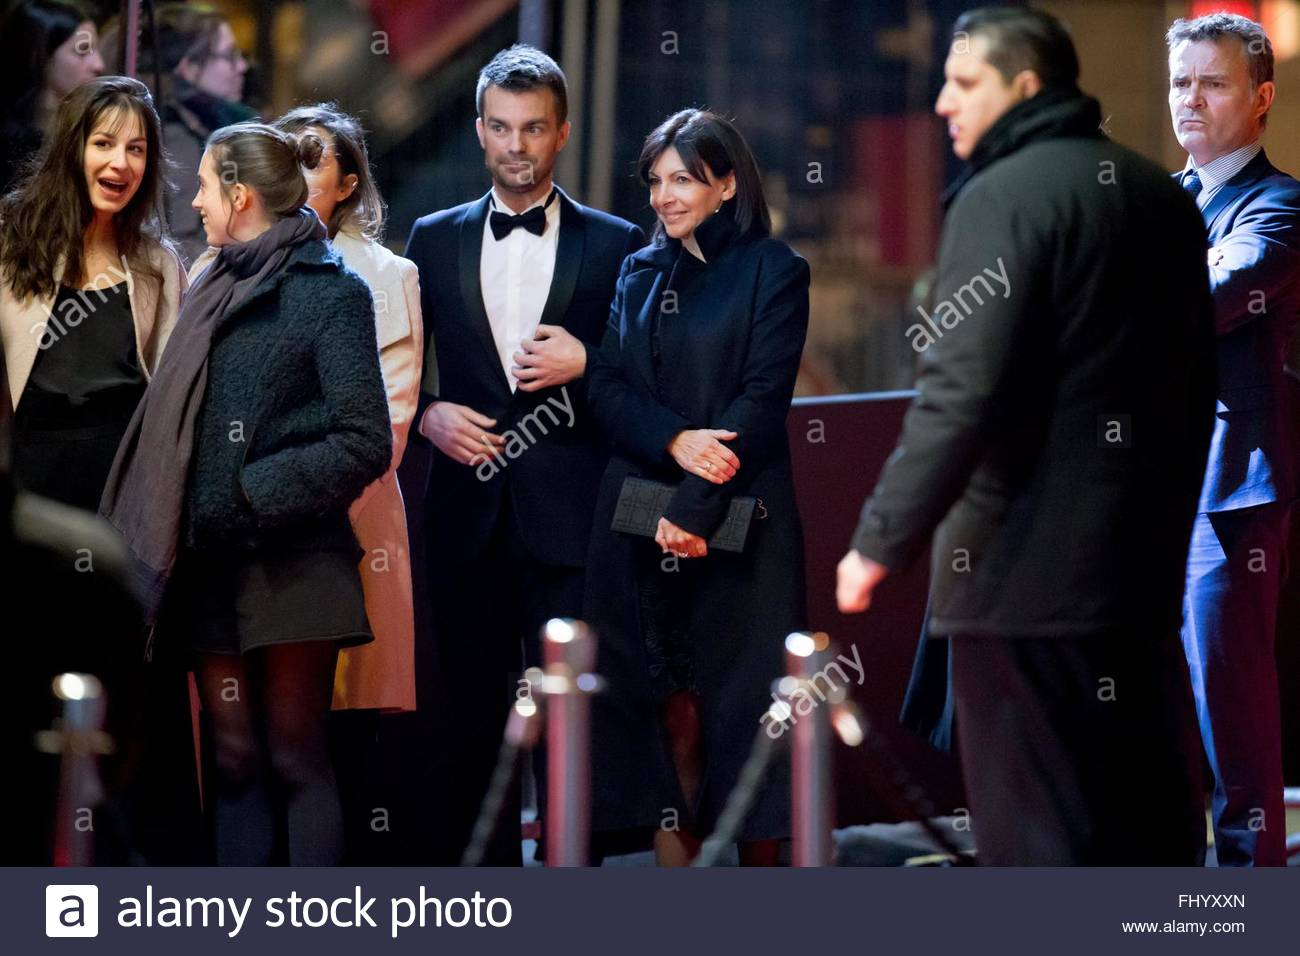 Paris, France. February 26th, 2016. FRANCE, Paris: Mayor of Paris Anne Hidalgo (3rdR) walks on the red carpet of Stock Photo